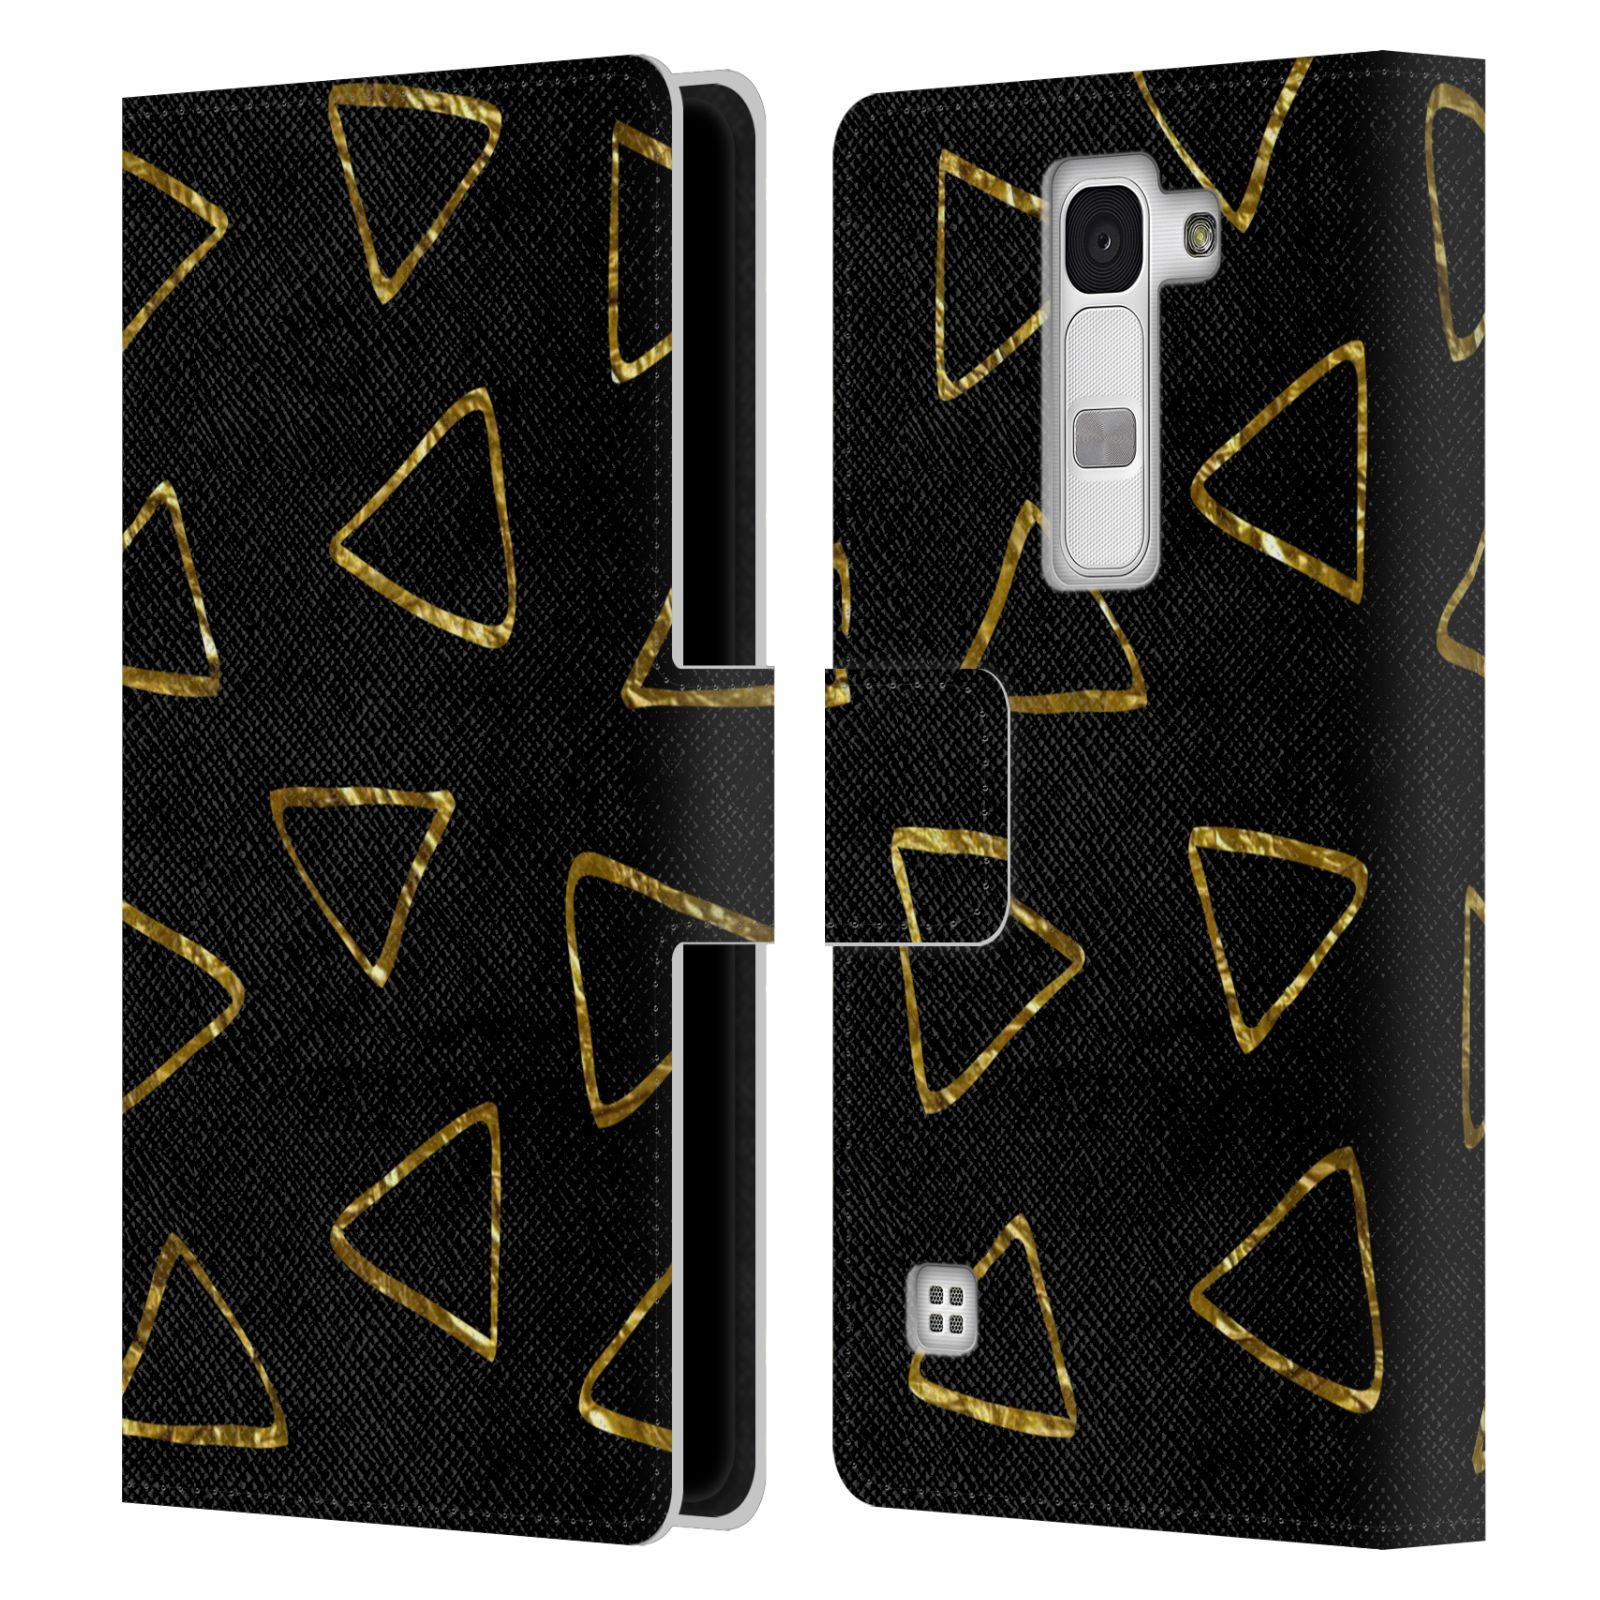 Book Cover Black And Gold ~ Official haroulita black and gold leather book wallet case